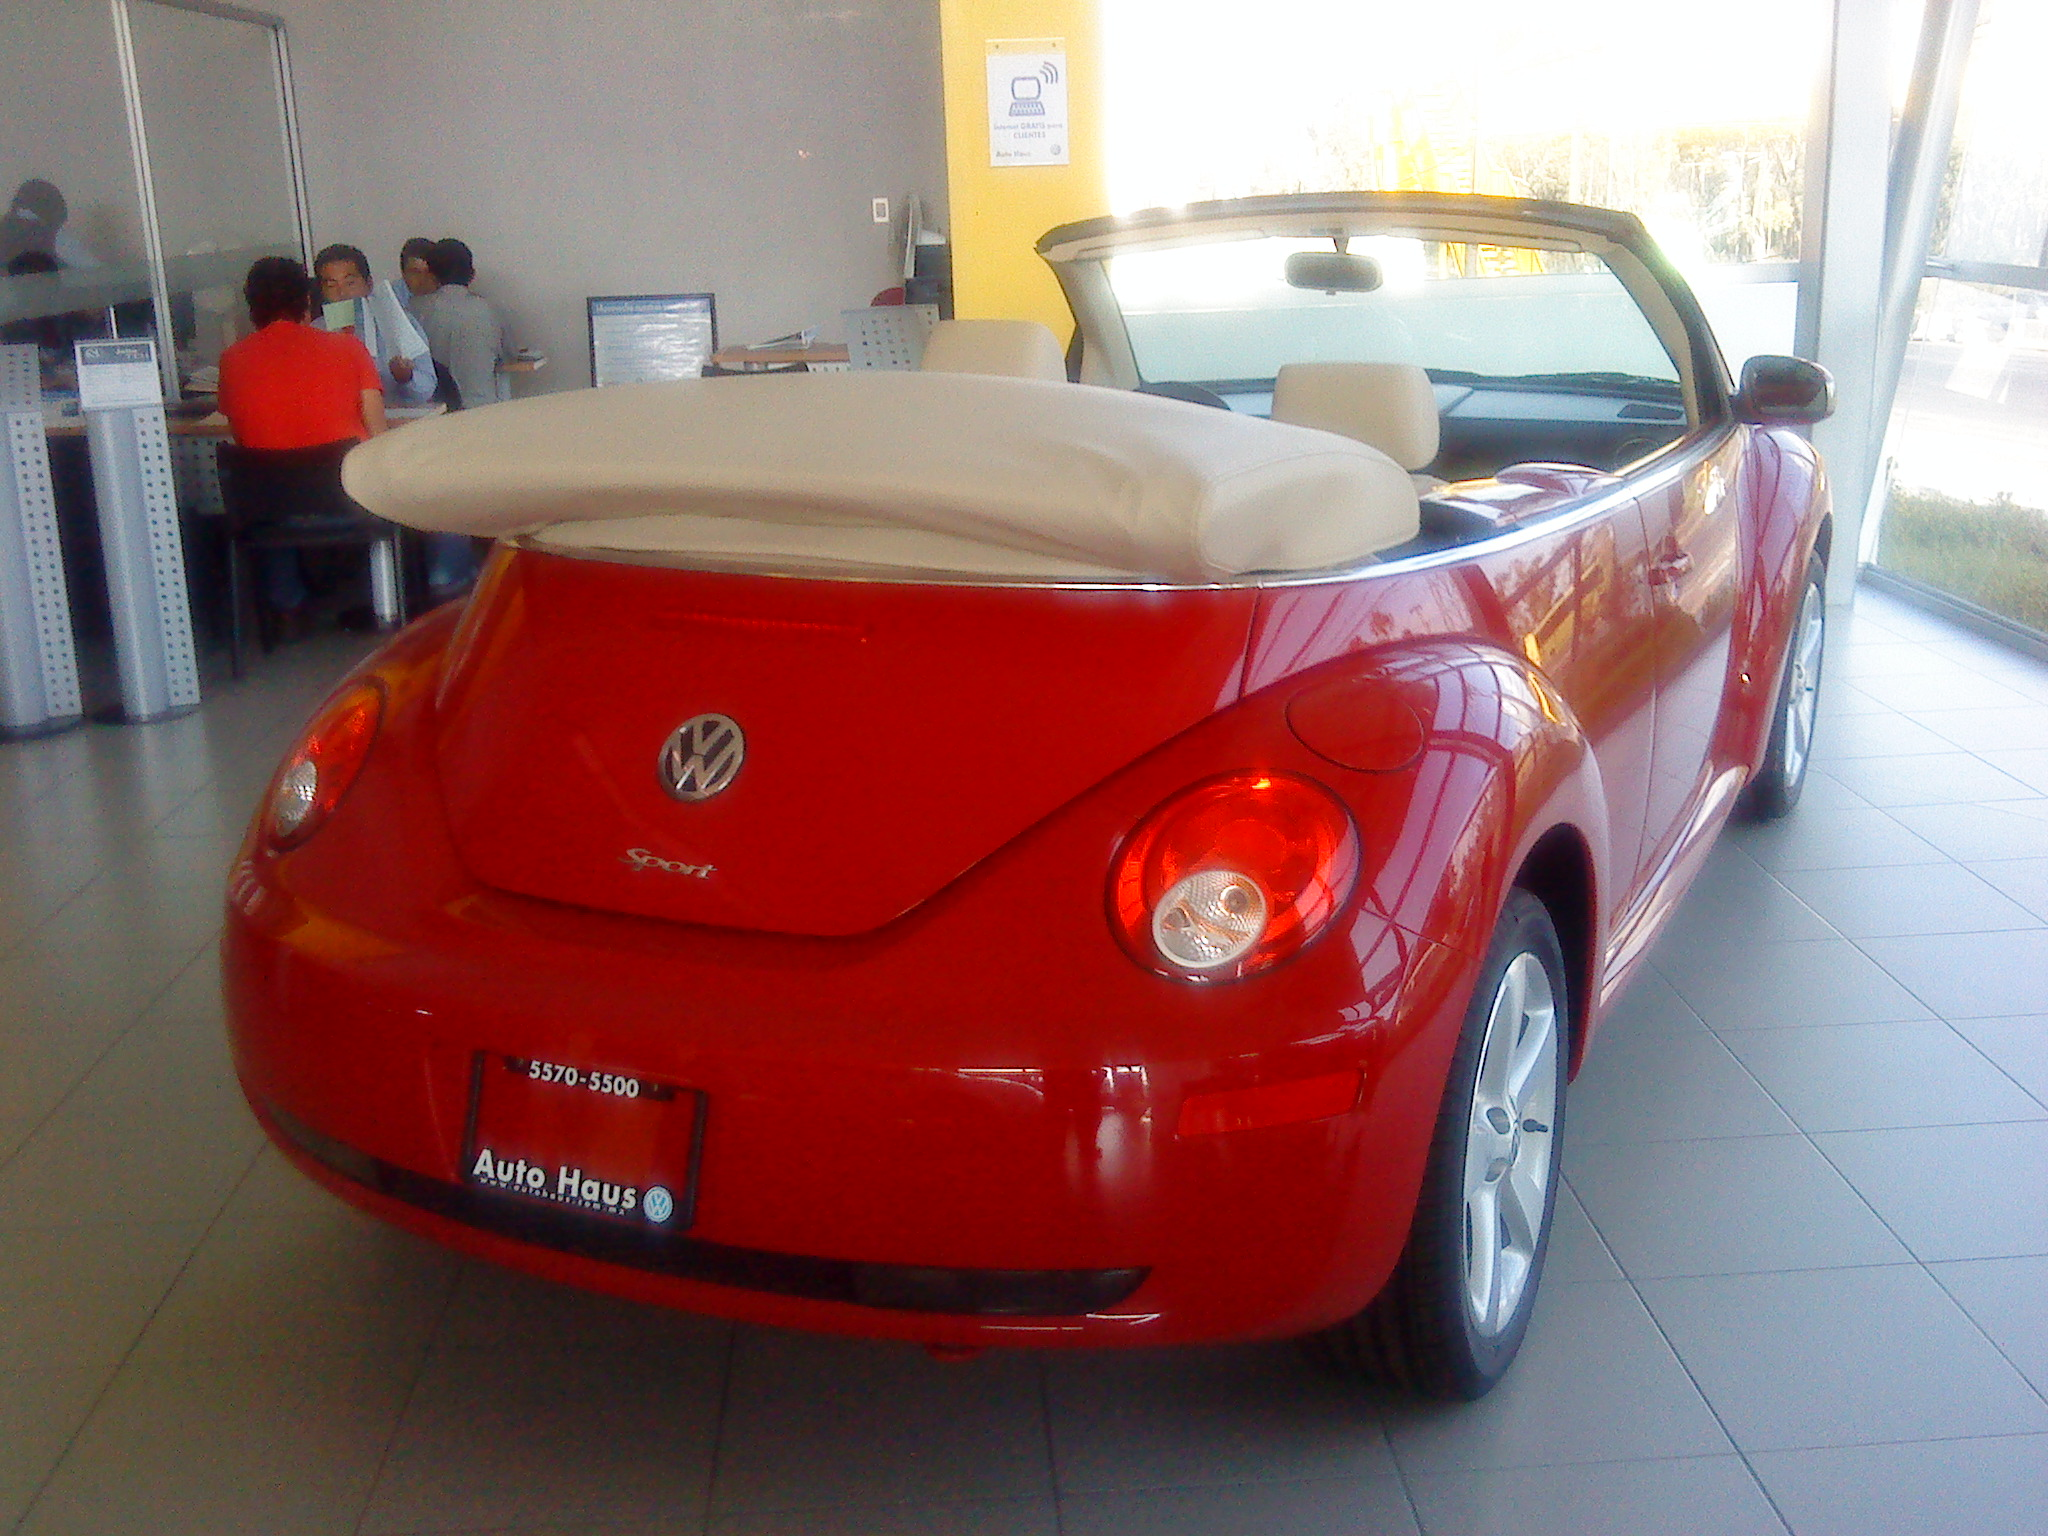 file vw new beetle cabriolet 2009 jpg wikimedia commons. Black Bedroom Furniture Sets. Home Design Ideas